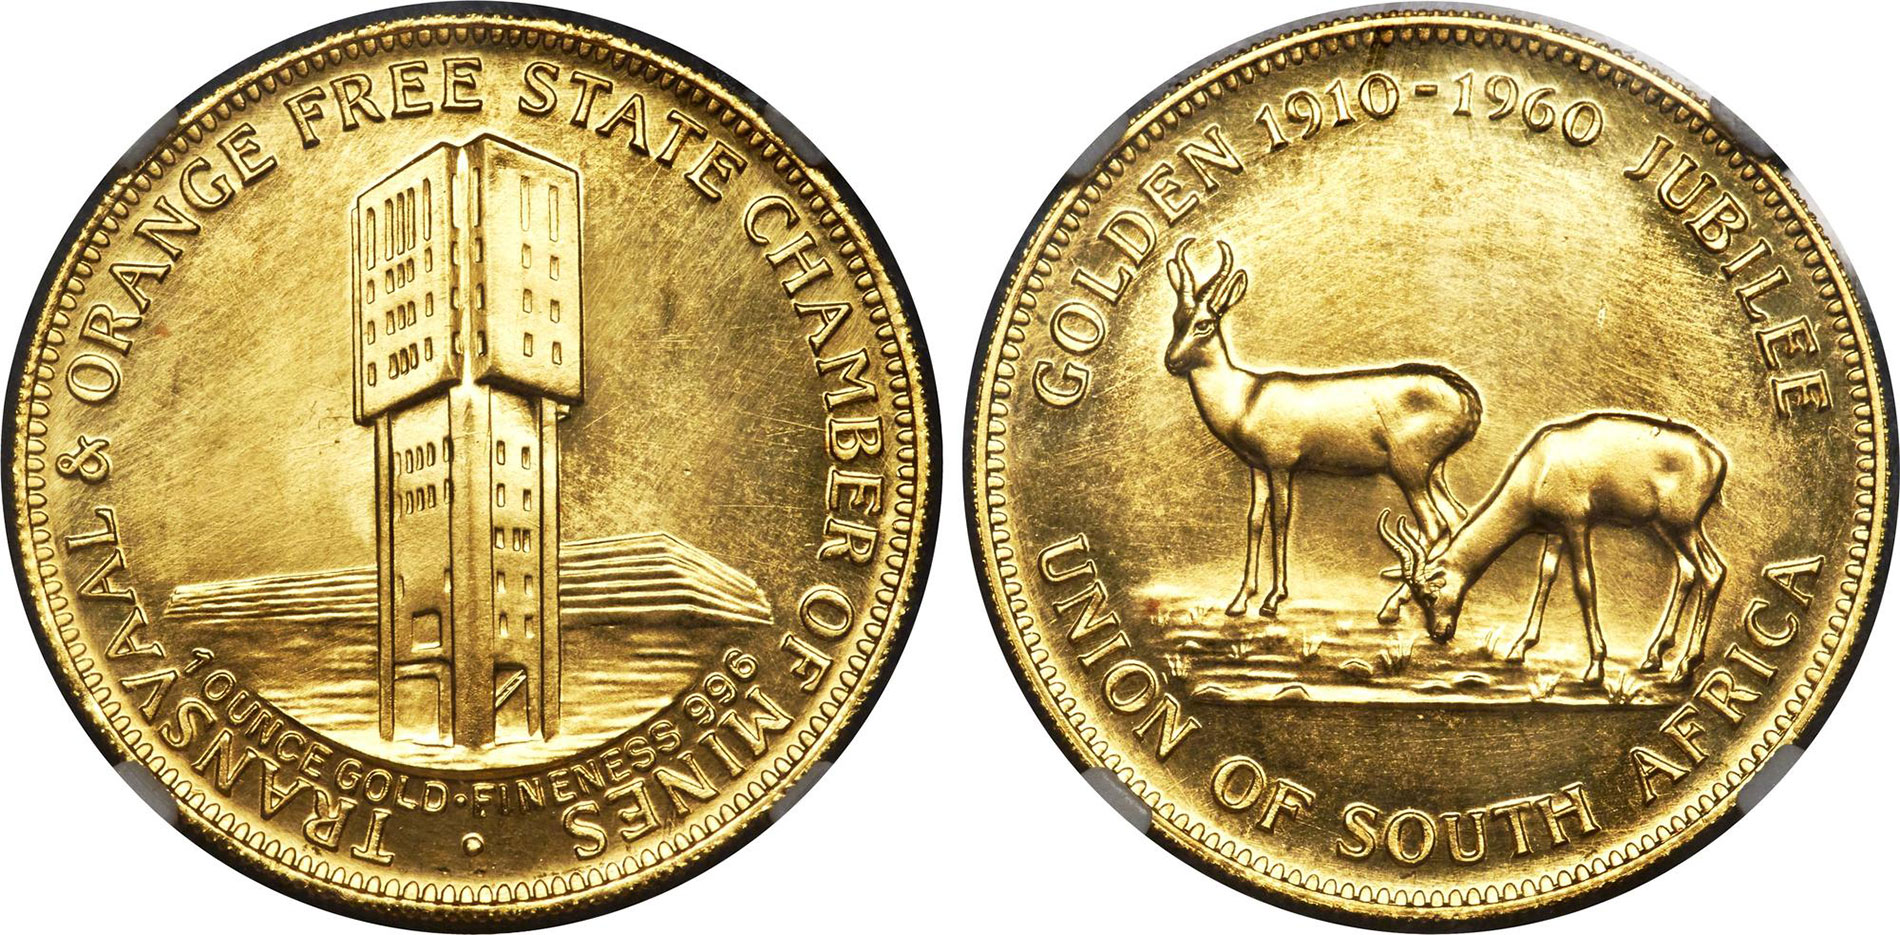 South Africa 1960 Chamber Mines 1oz Medal.Image is courtesy of Heritage Auctions, www.HA.com.